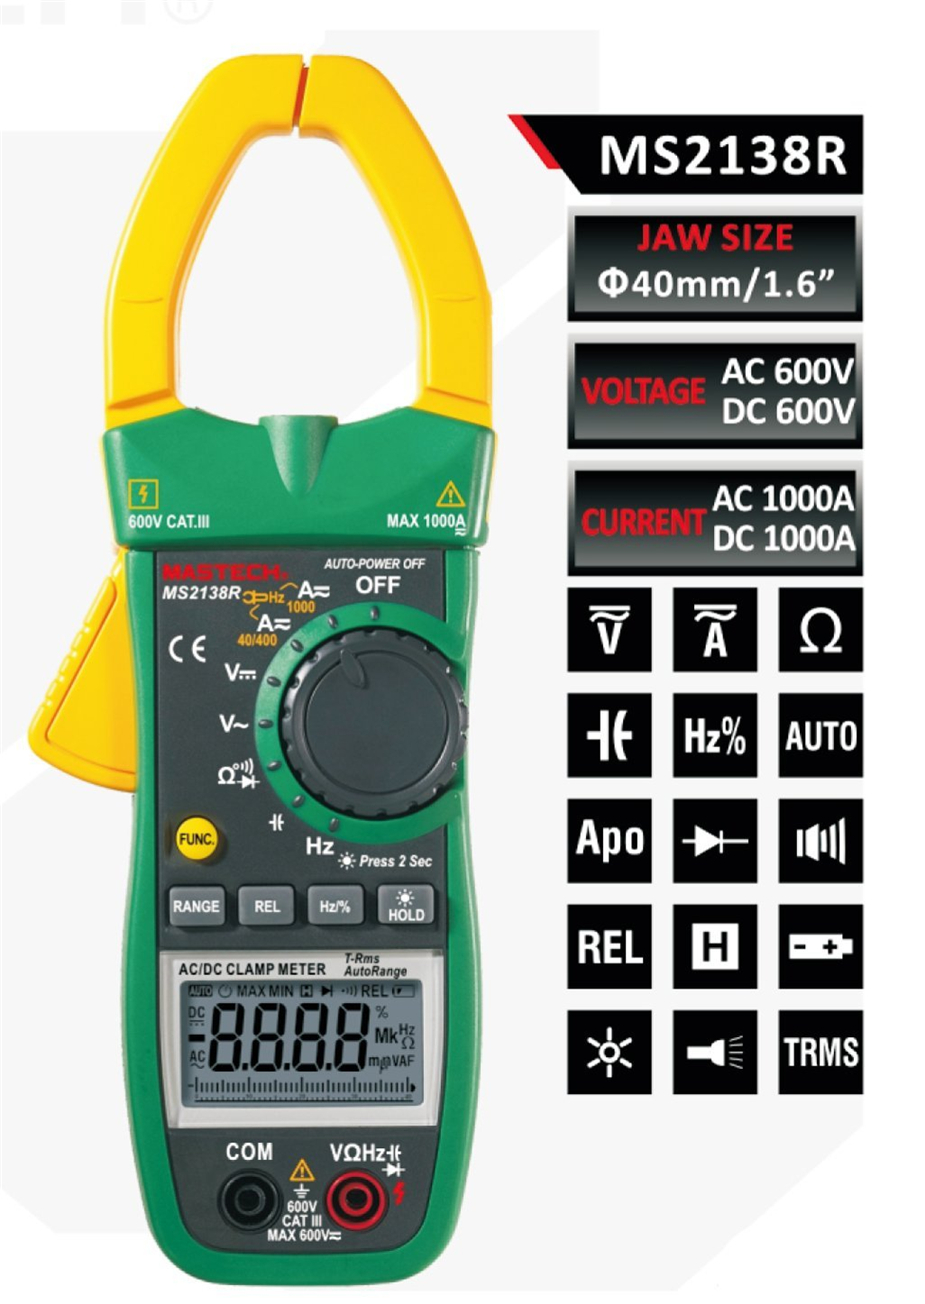 Hot MASTECH MS2138R 4000 Counts Digital AC DC Clamp Meter Multimeter Voltage Current Capacitance Resistance Tester цена